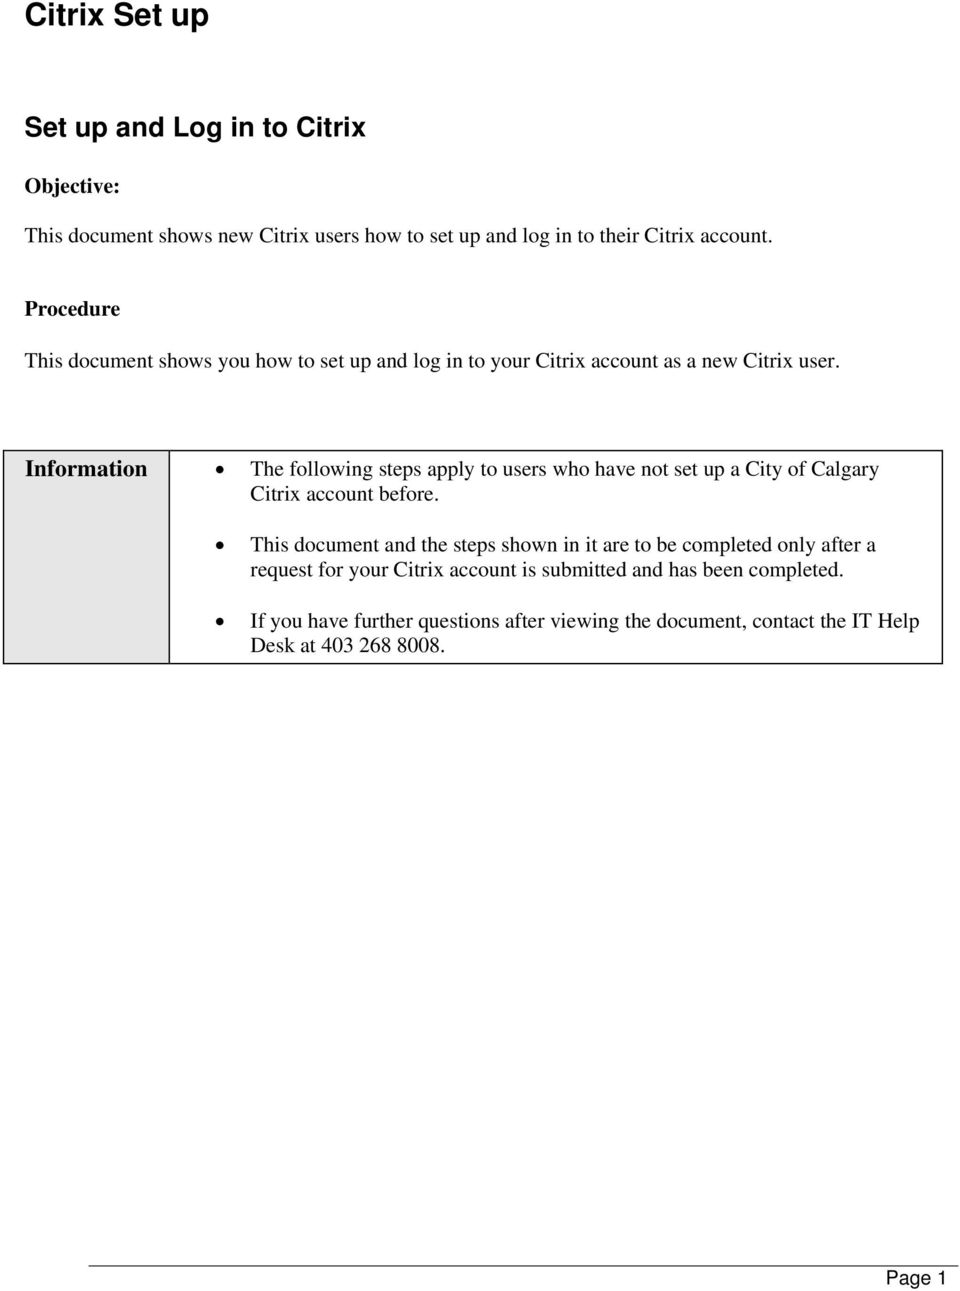 Information The following steps apply to users who have not set up a City of Calgary Citrix account before.